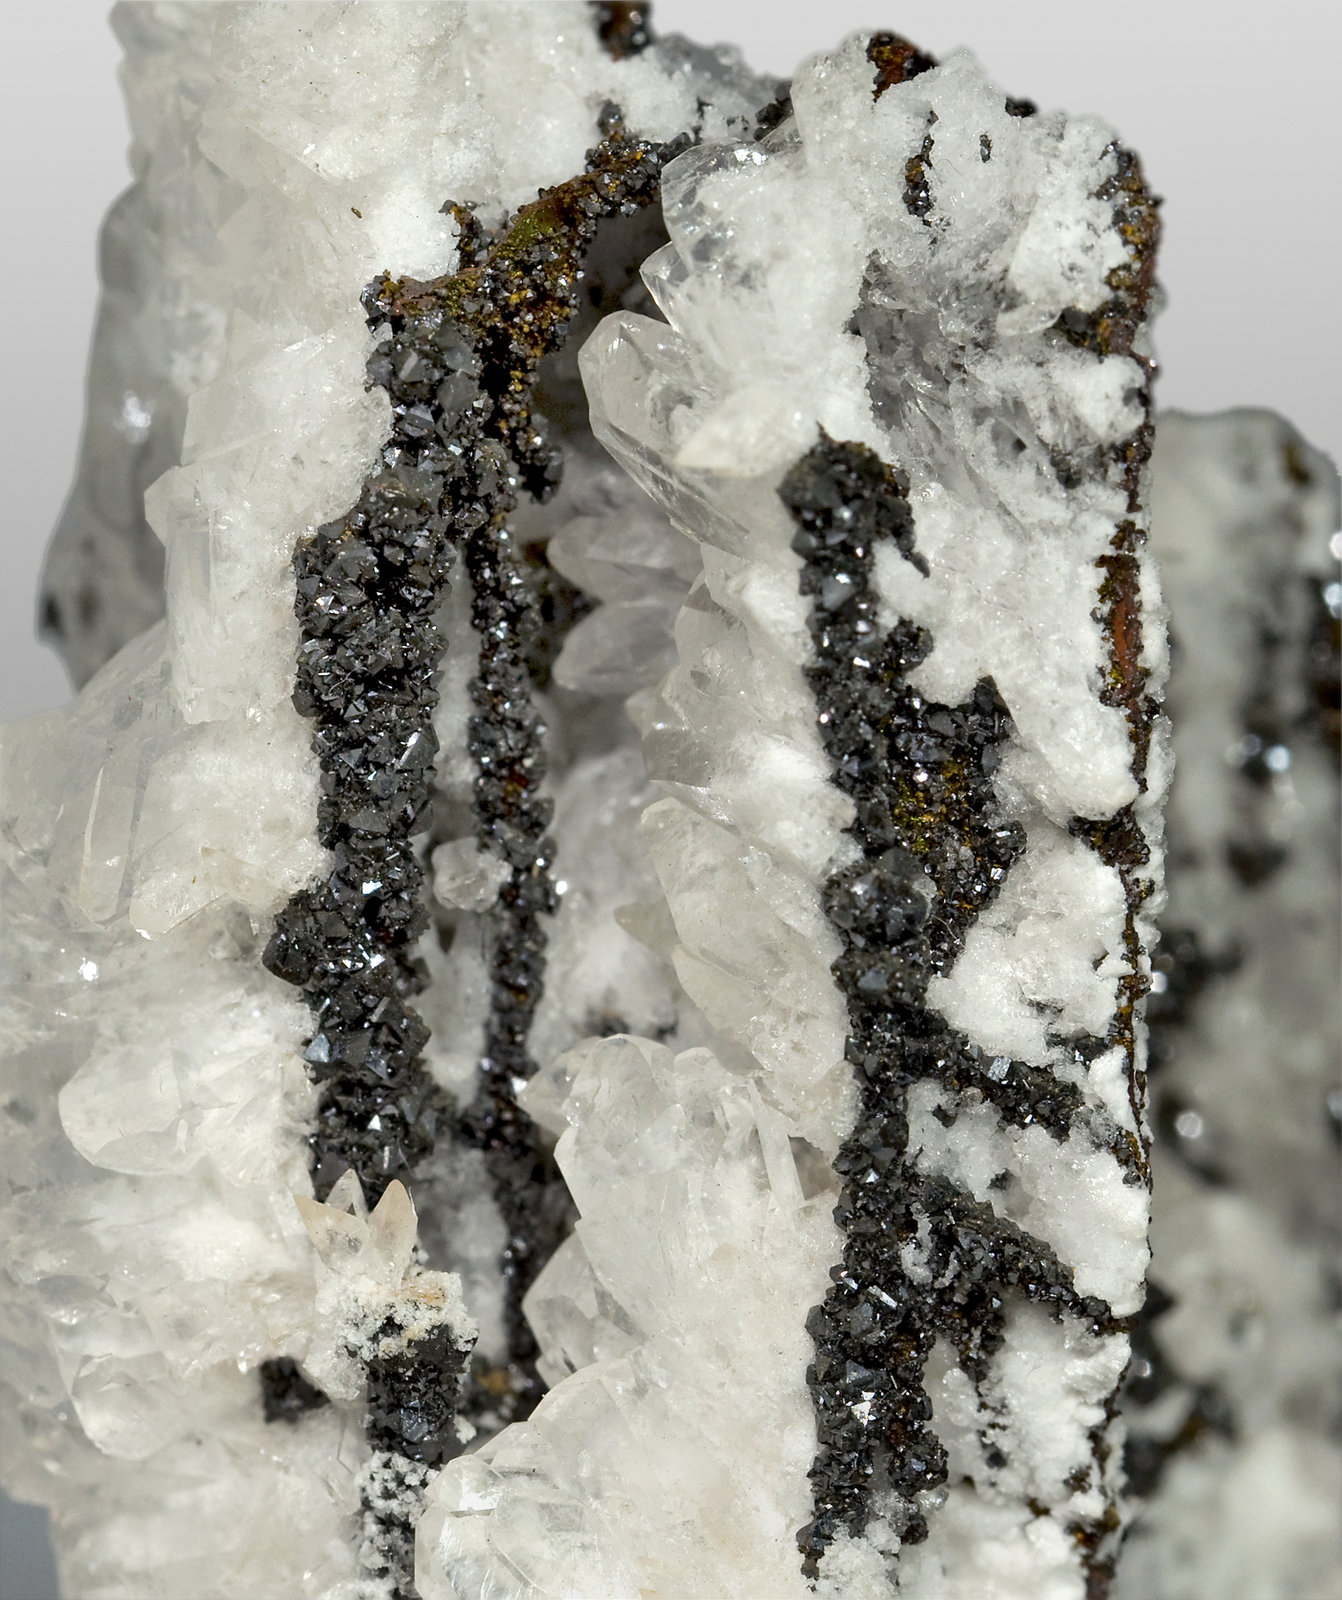 specimens/s_imagesT4/Descloizite-NK86T4d.jpg